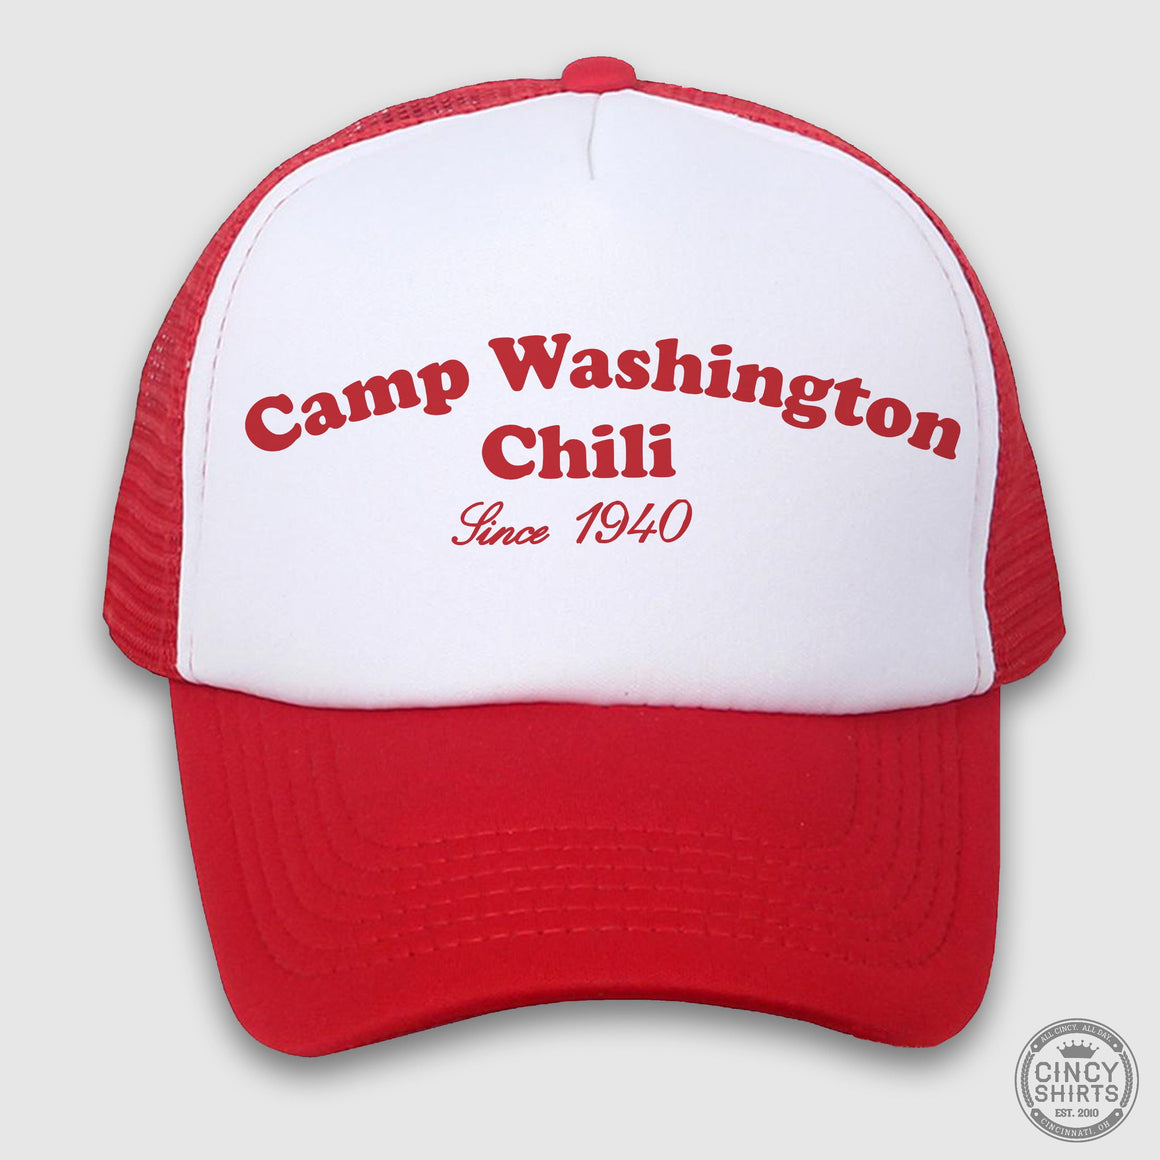 Camp Washington Chili Trucker Hat - Cincy Shirts